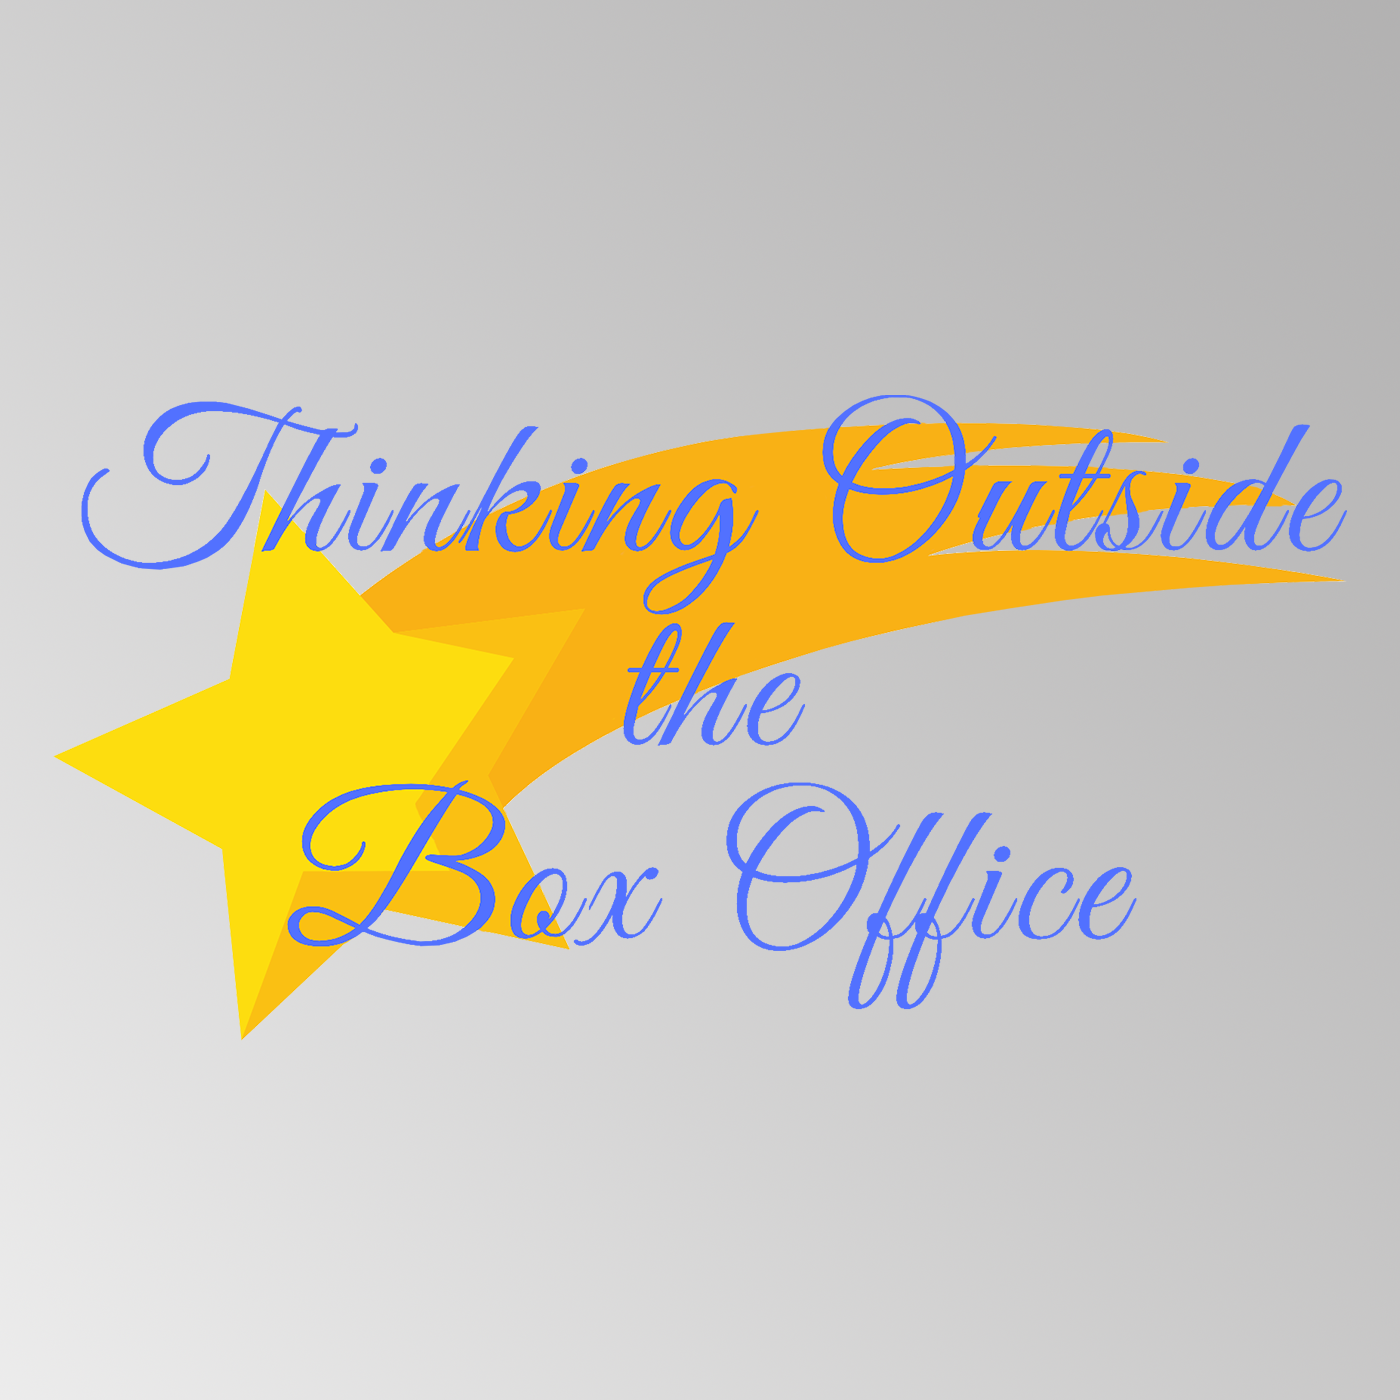 Thinking Outside the Box Office